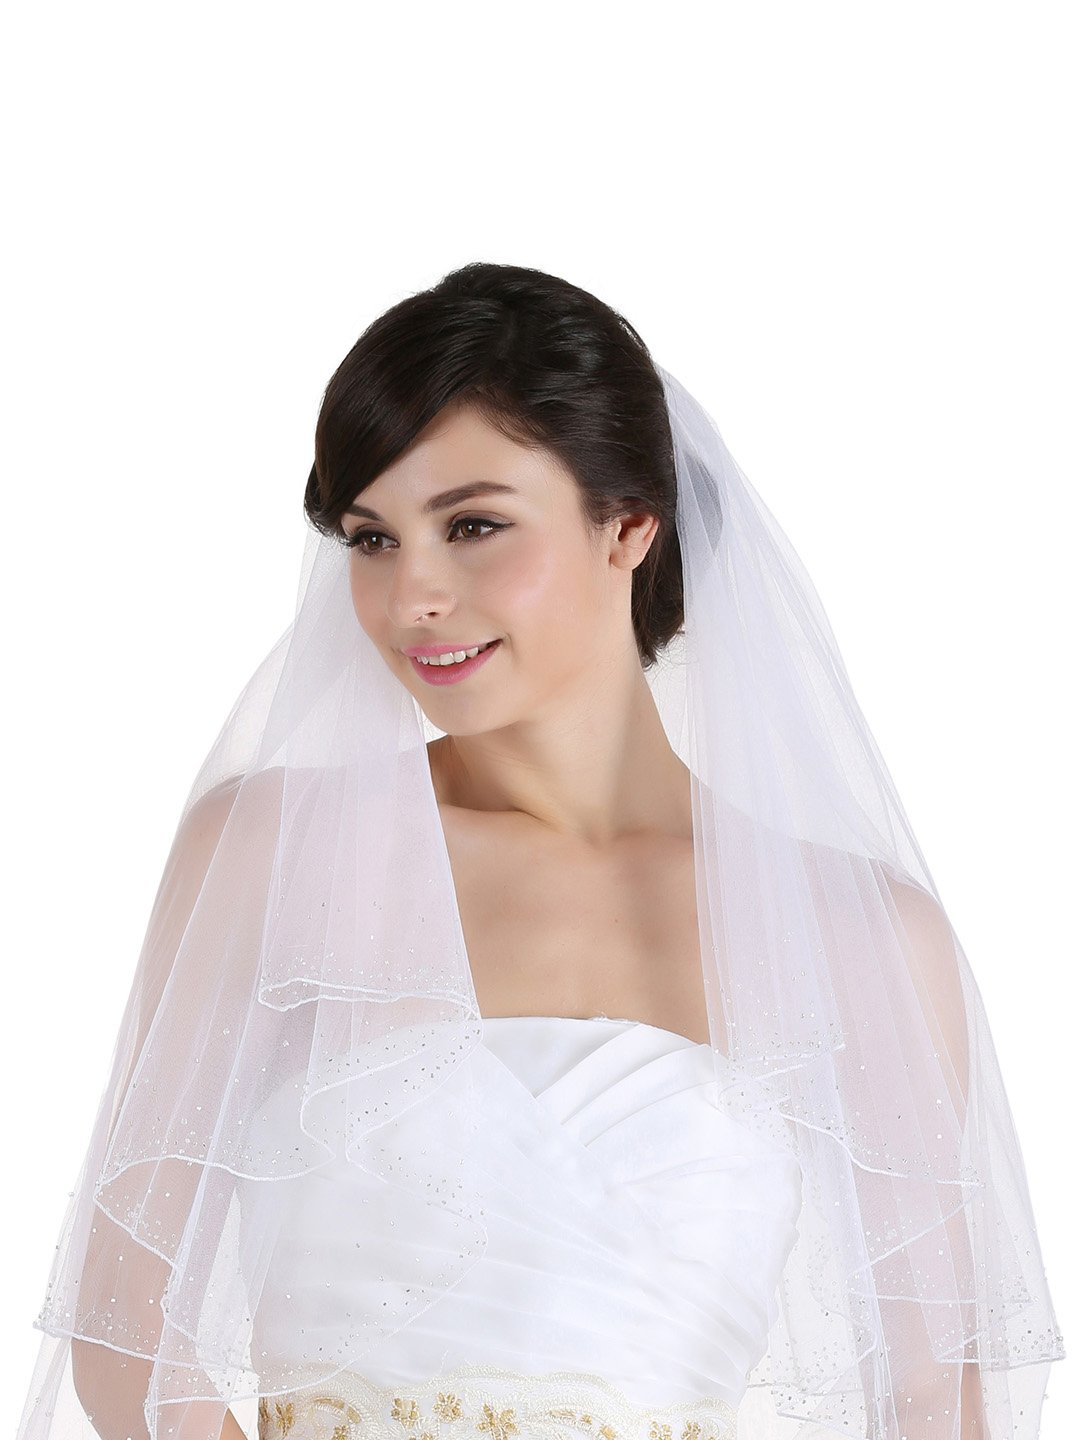 2T 2 Tier 2.5'' Wide Crystal Beaded Edge Veil - Ivory Cathedral Length 108'' V149